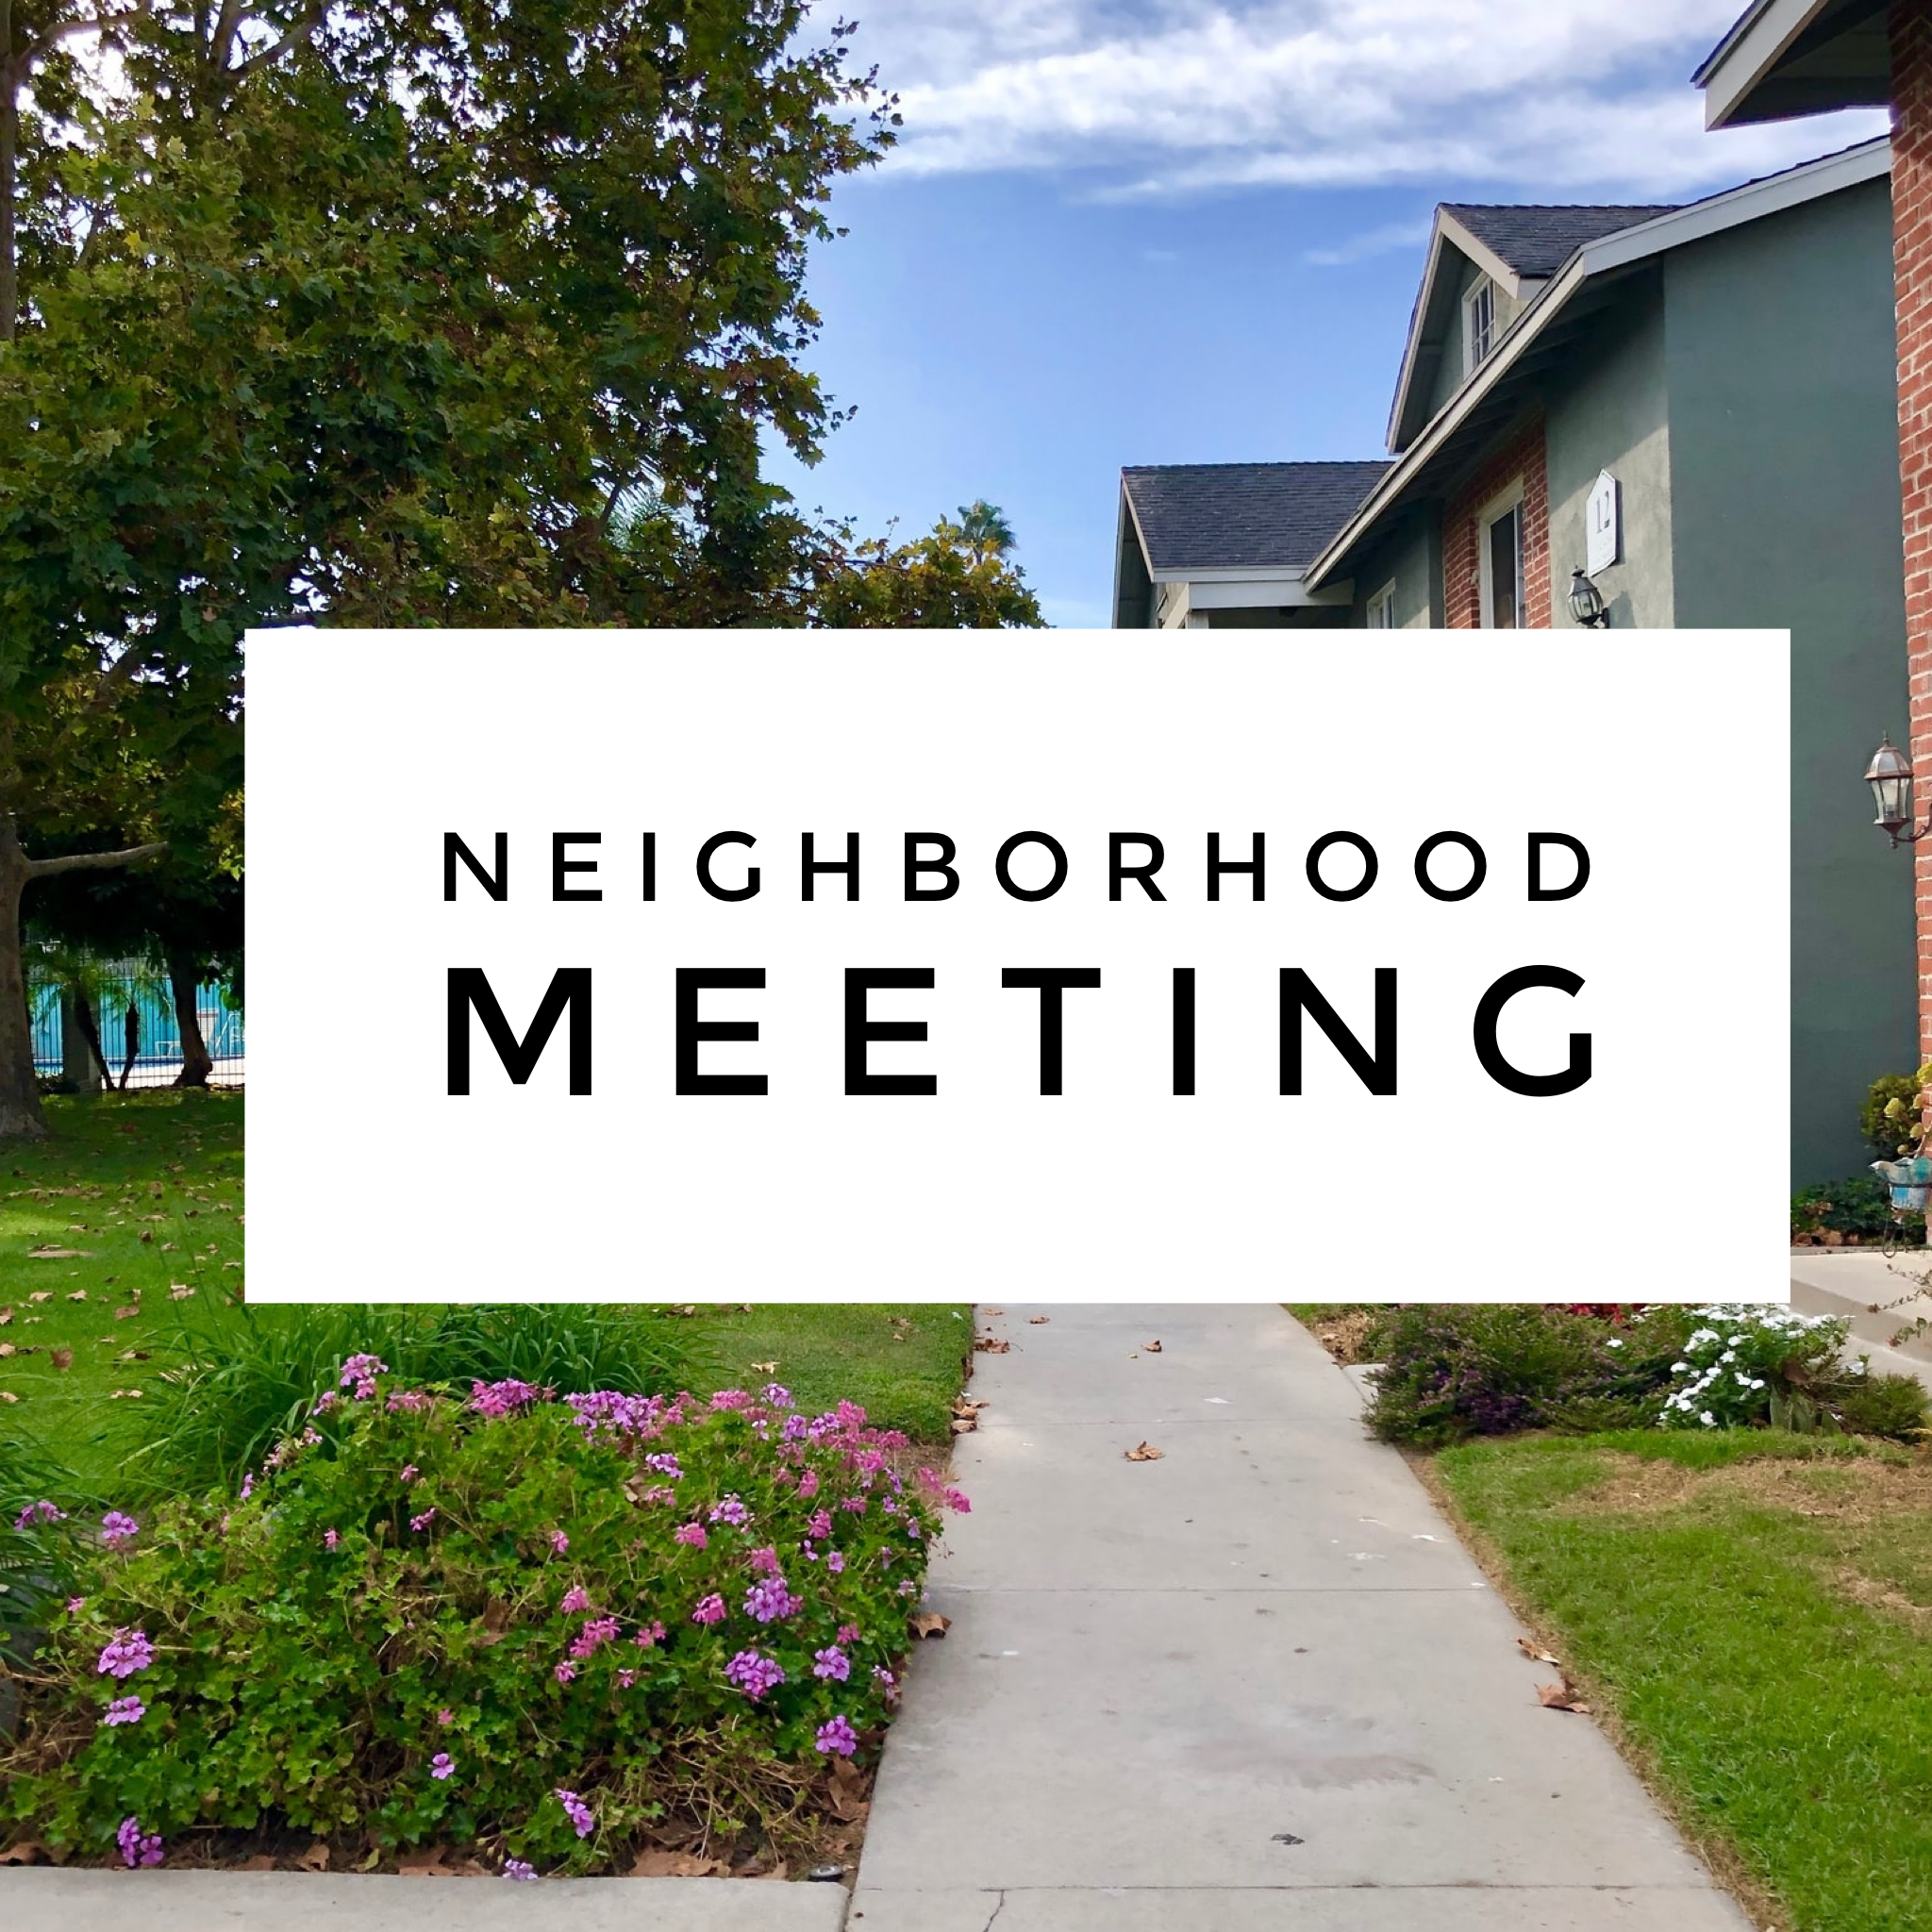 Neighborhood Meeting